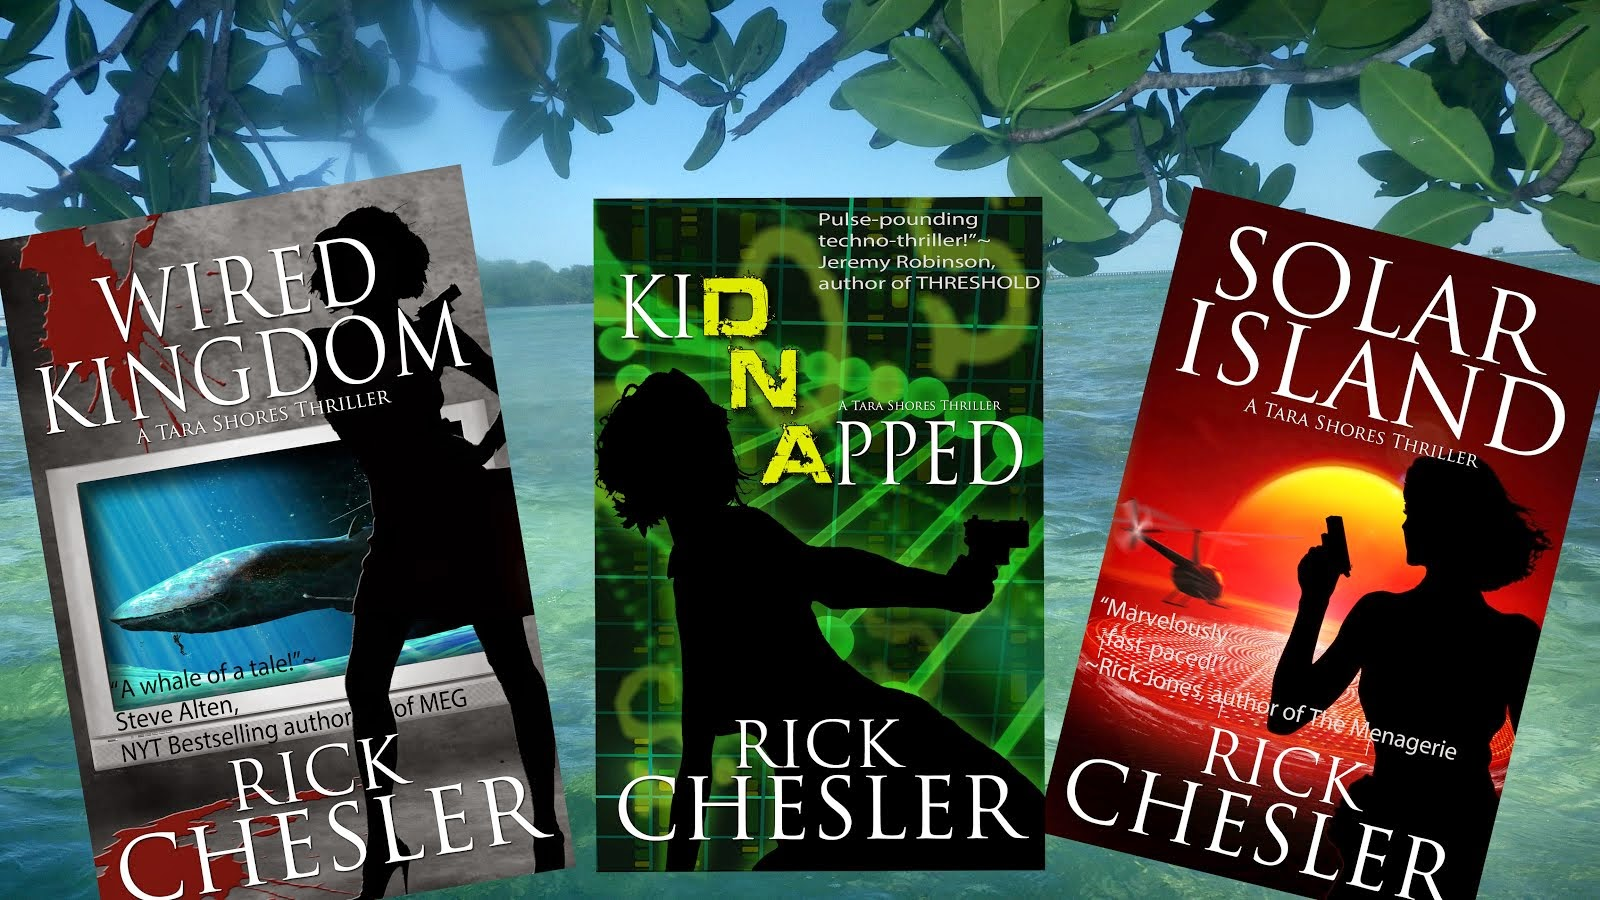 Author Rick Chesler